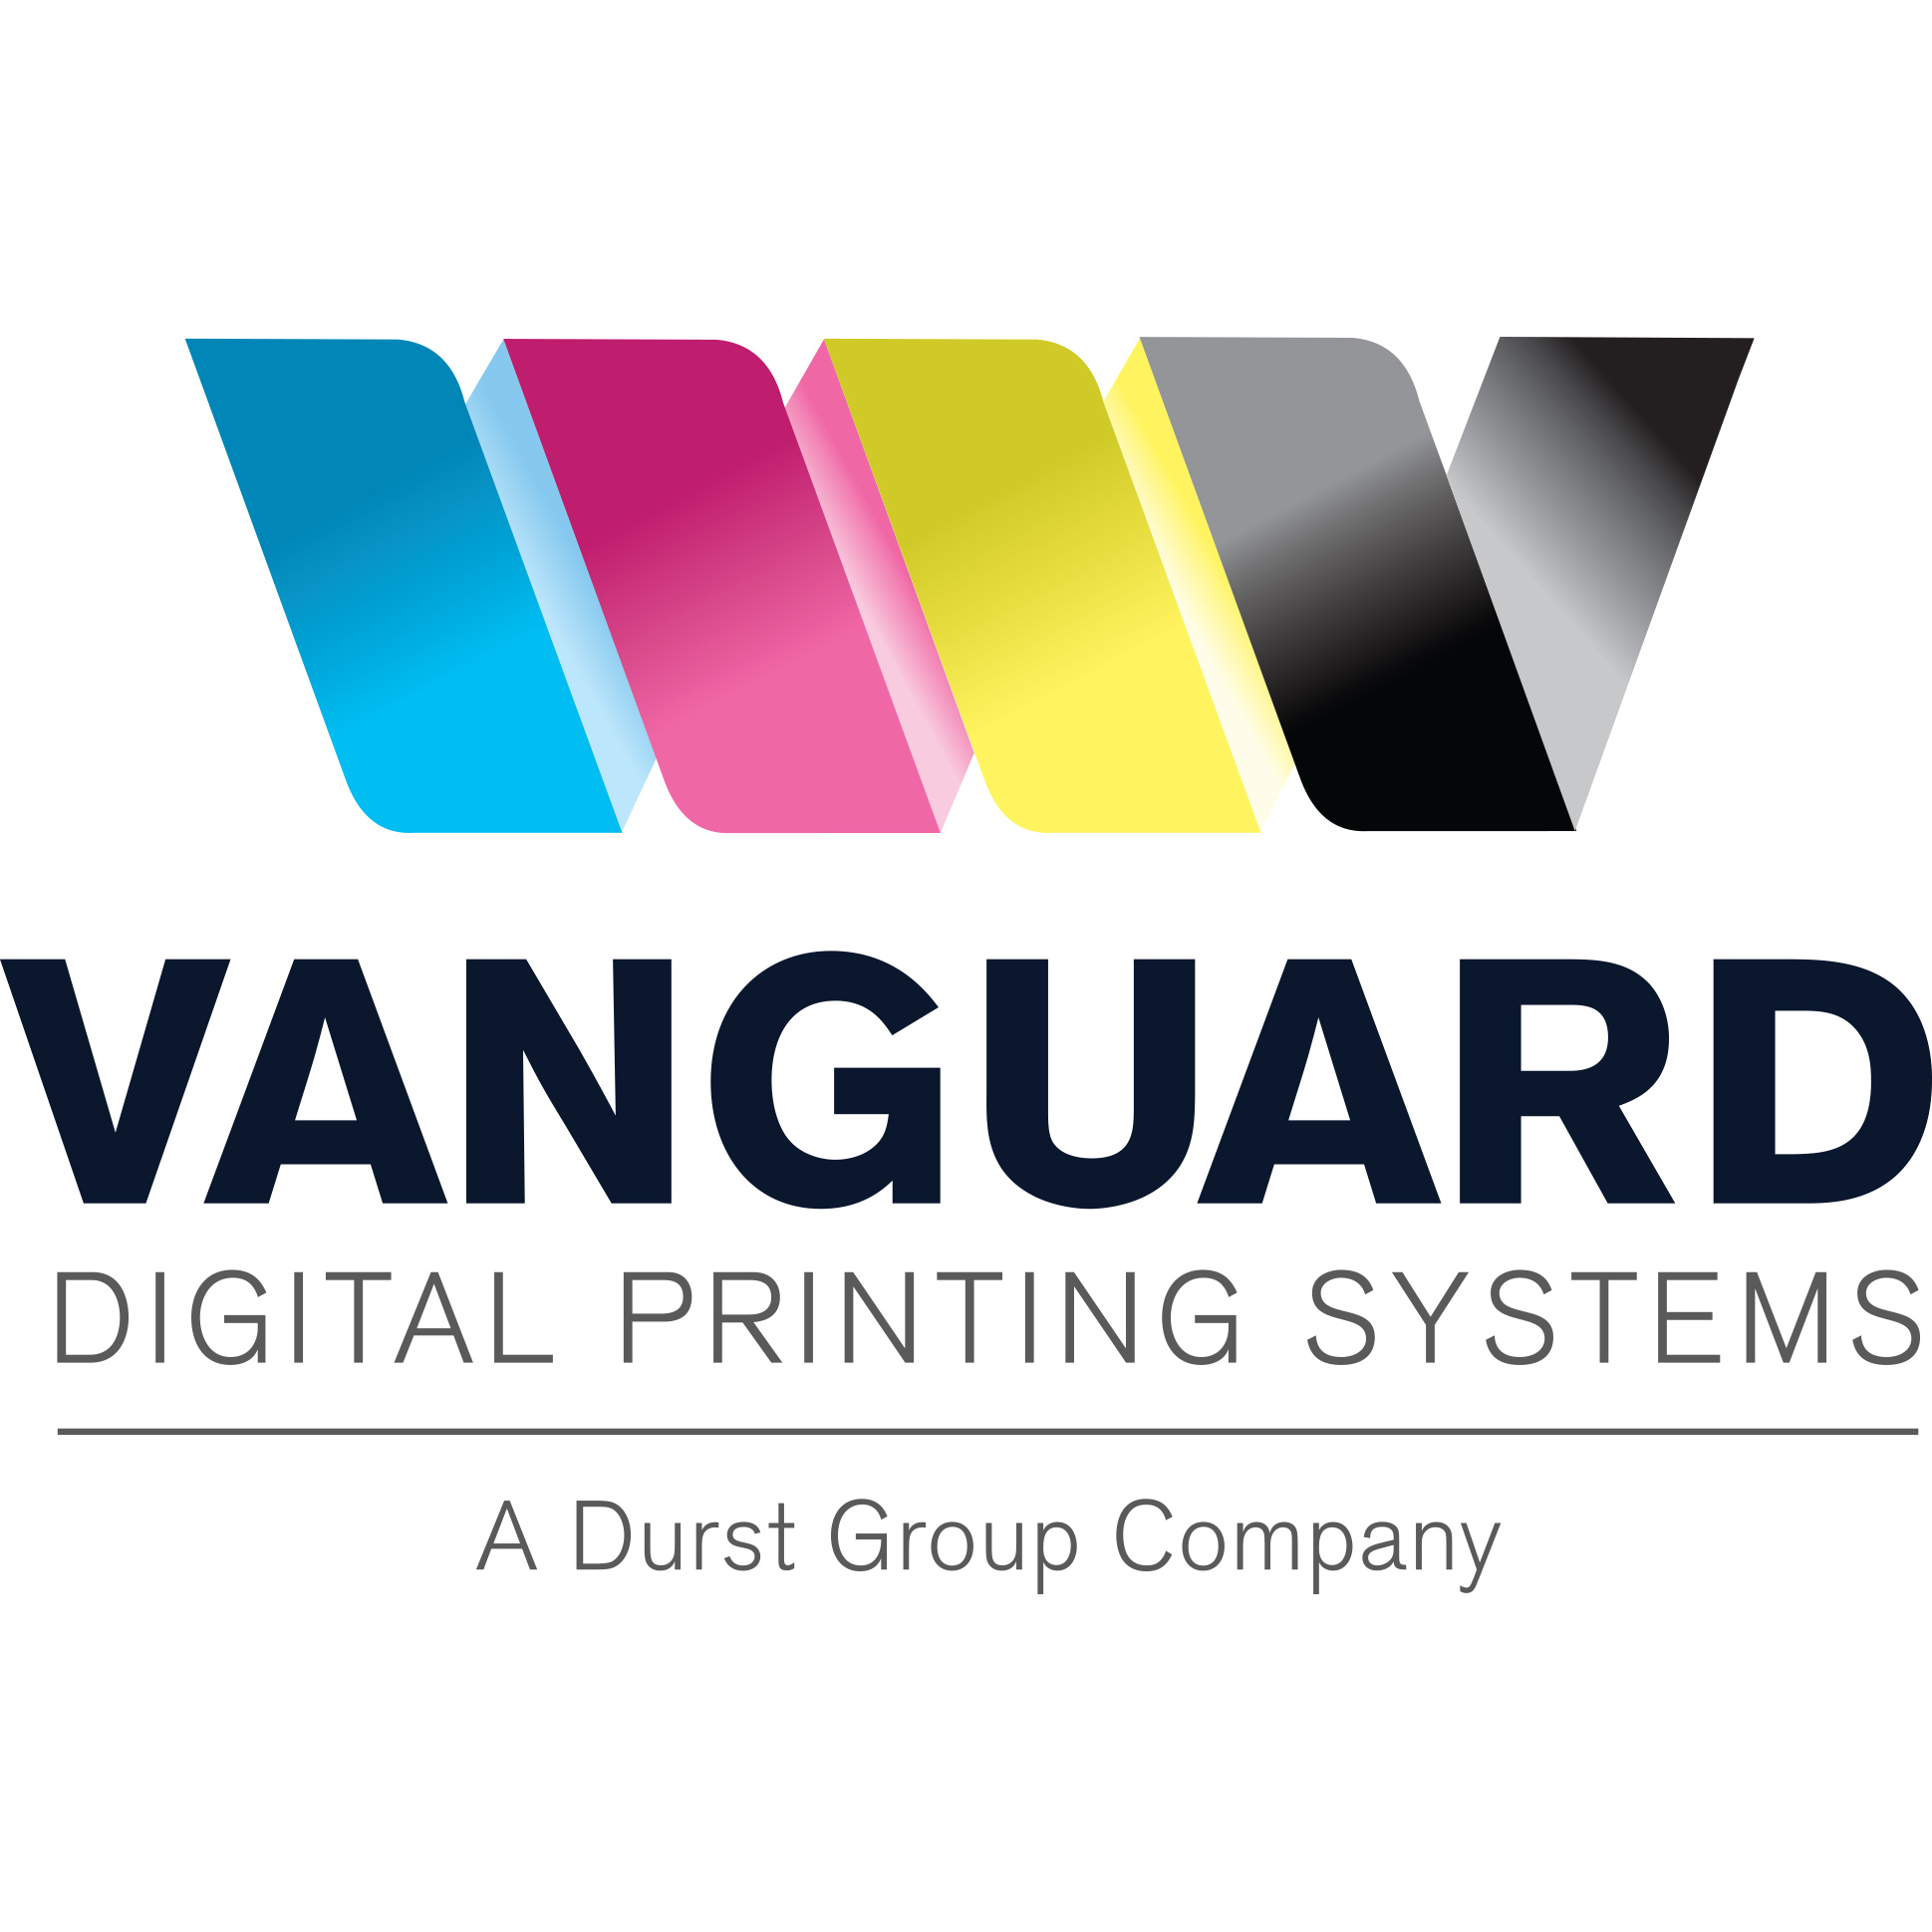 Vanguard Digital Printing Systems Durst logo